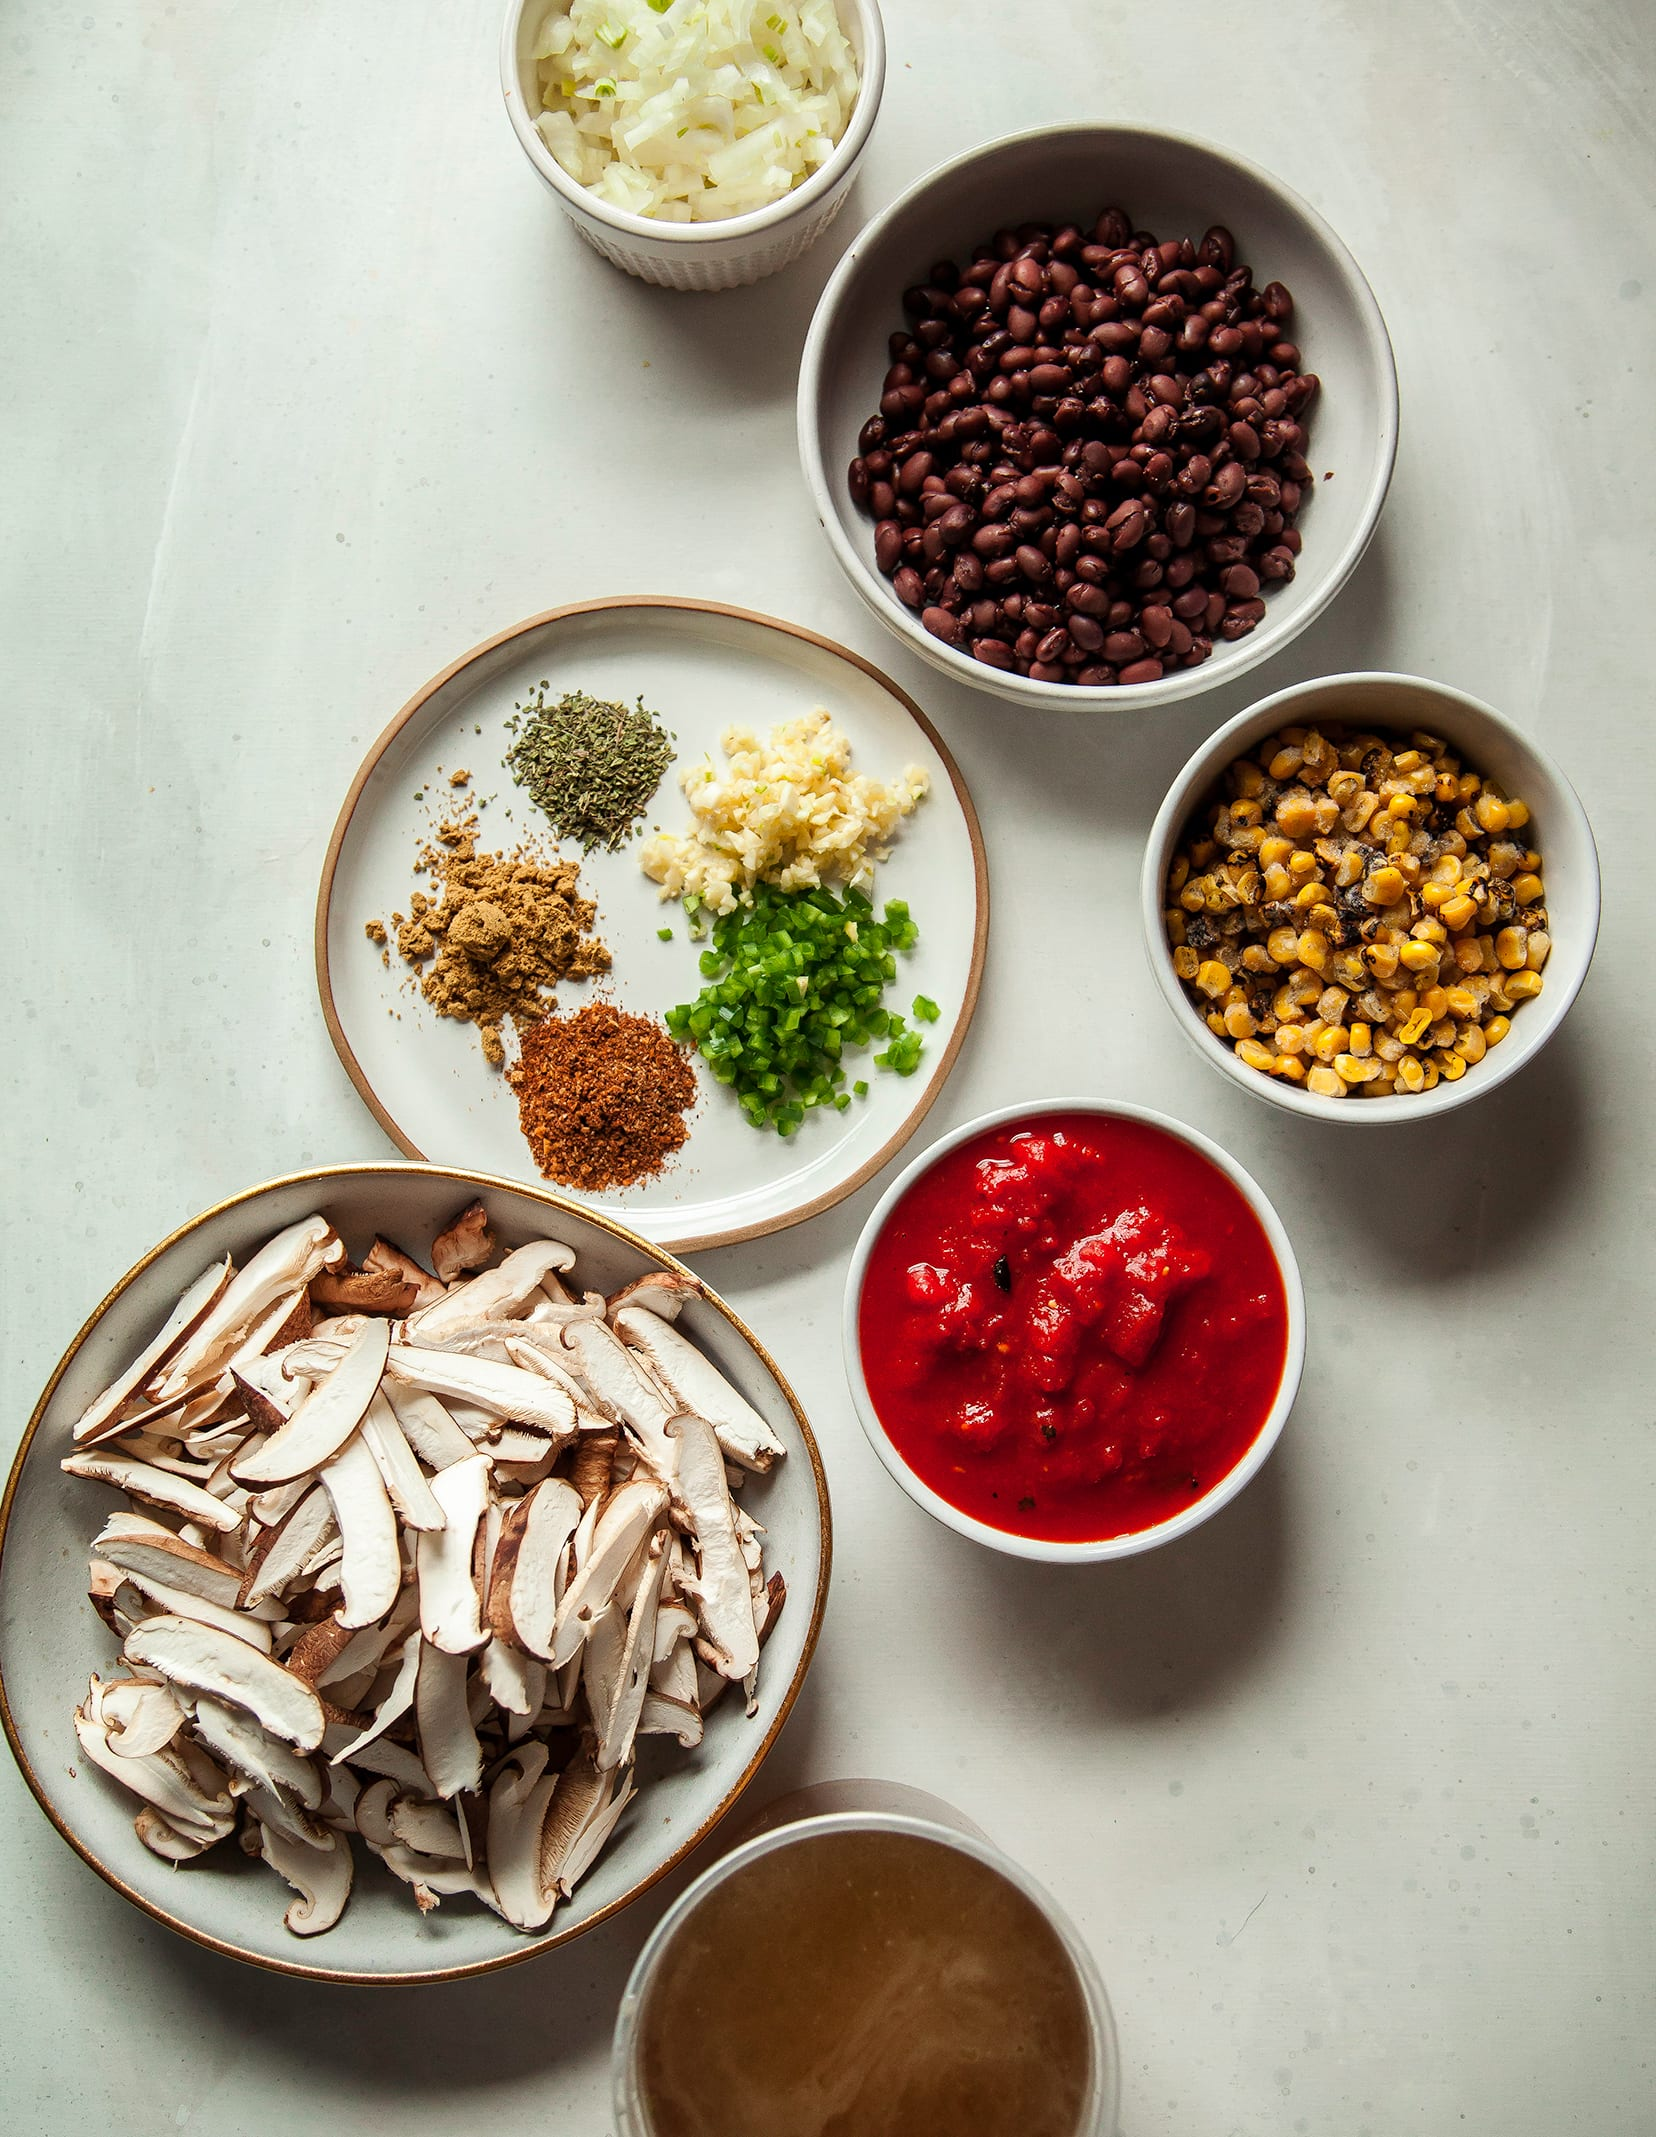 An overhead shot of ingredients, including: spices, garlic, jalapeño, canned crushed tomatoes, sliced shiitake mushrooms, black beans, corn, and diced onion. All on a white background.